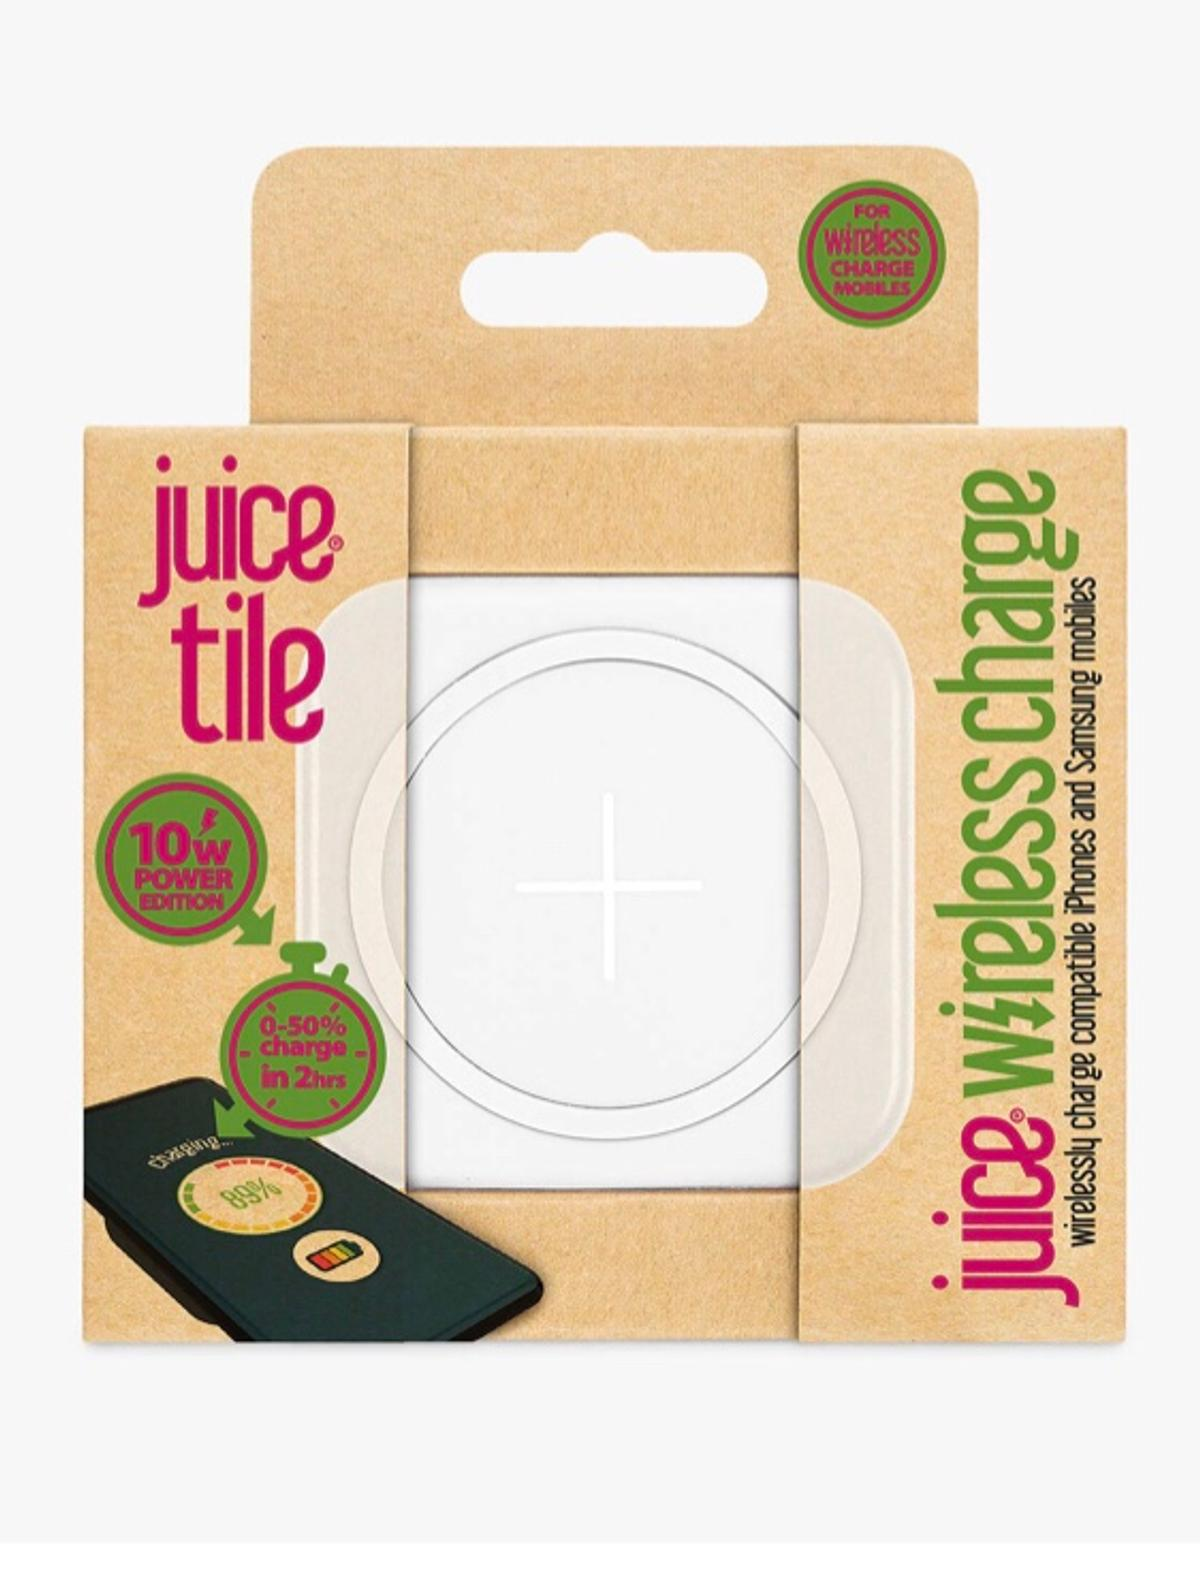 wireless charger juice tile 10w fast